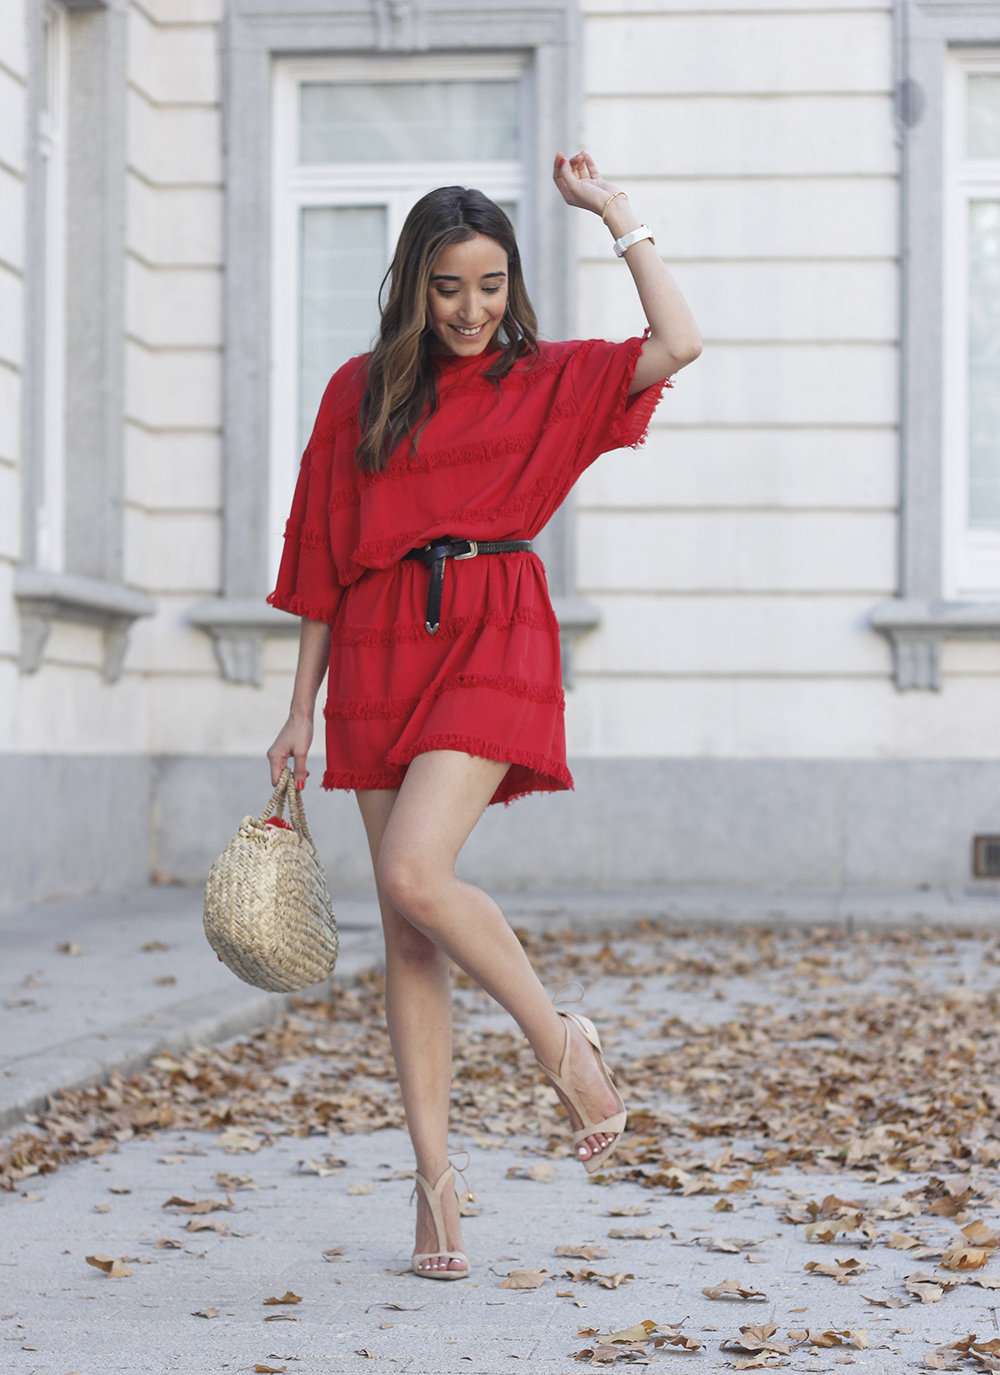 red dress nude heels summer outfit accessories capazo10